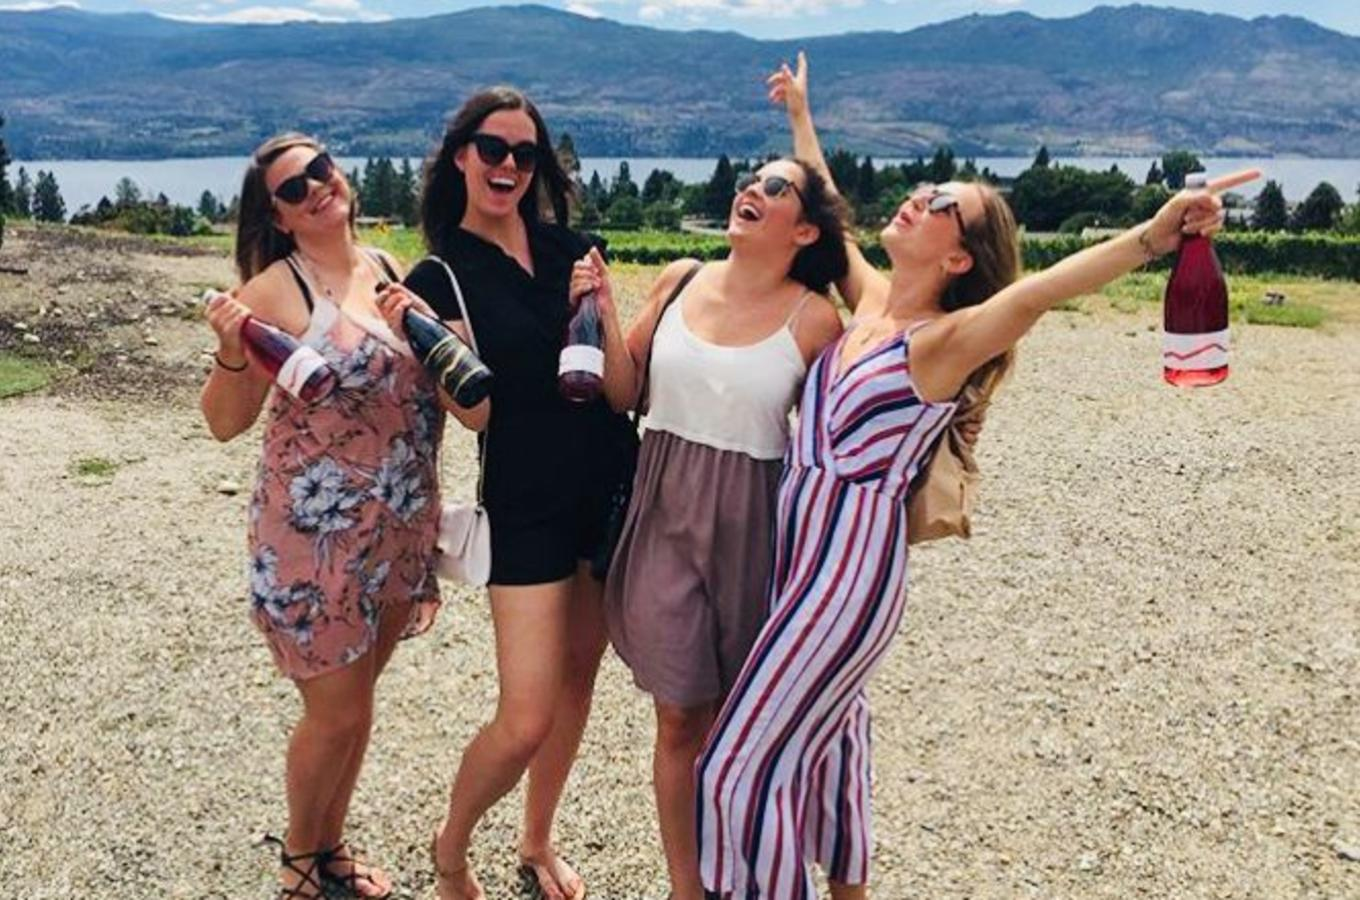 Girls having fun on wine tour - Mt.Boucherie Winery - West Kelowna